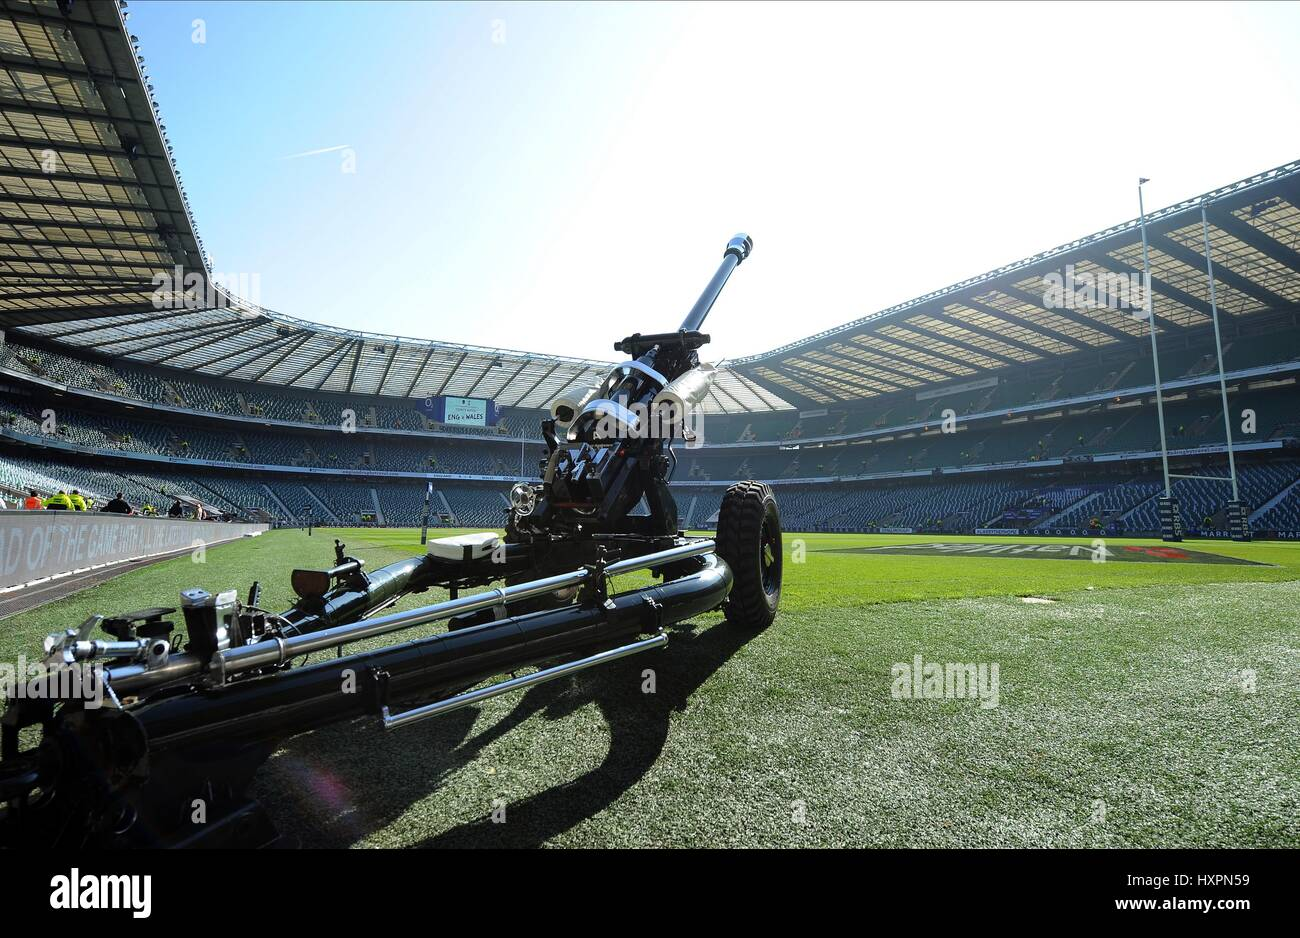 L'HONORABLE ARTILLERY COMPA ANGLETERRE RU V Pays de Galles Angleterre V PAYS DE GALLES RU RU LONDON TWICKENHAM Photo Stock